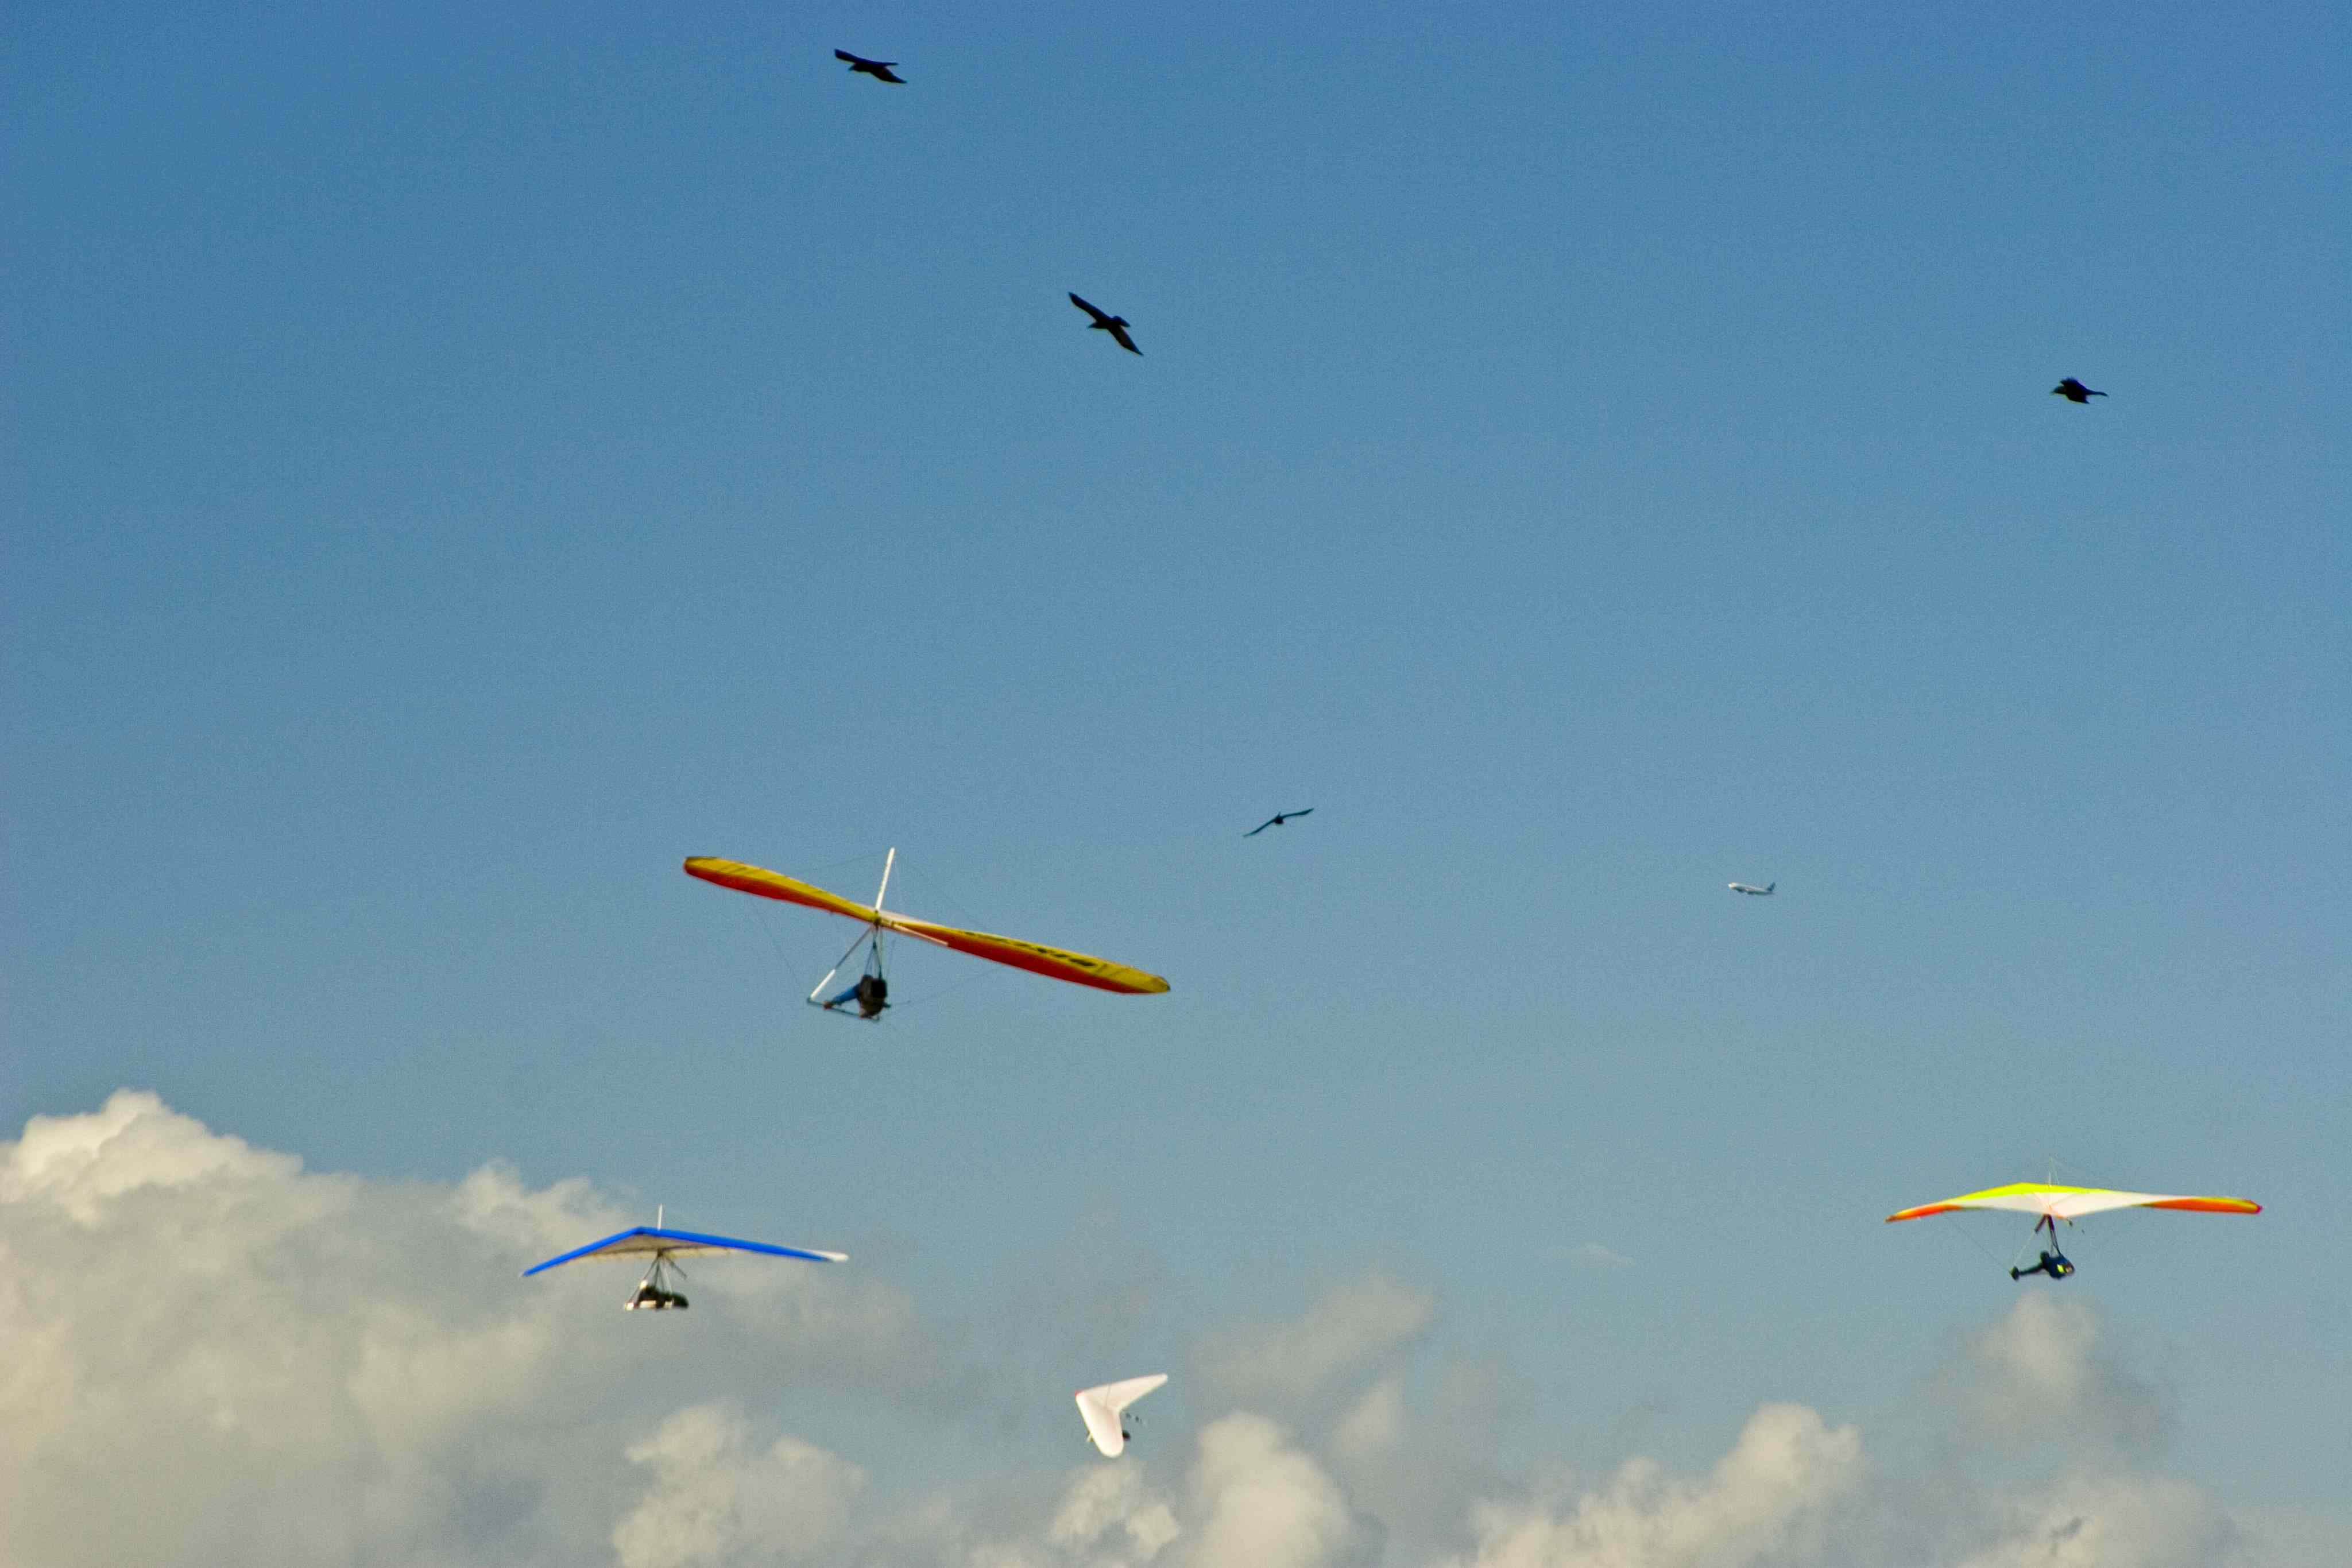 4096x2731 - Hang Gliding Wallpapers 29